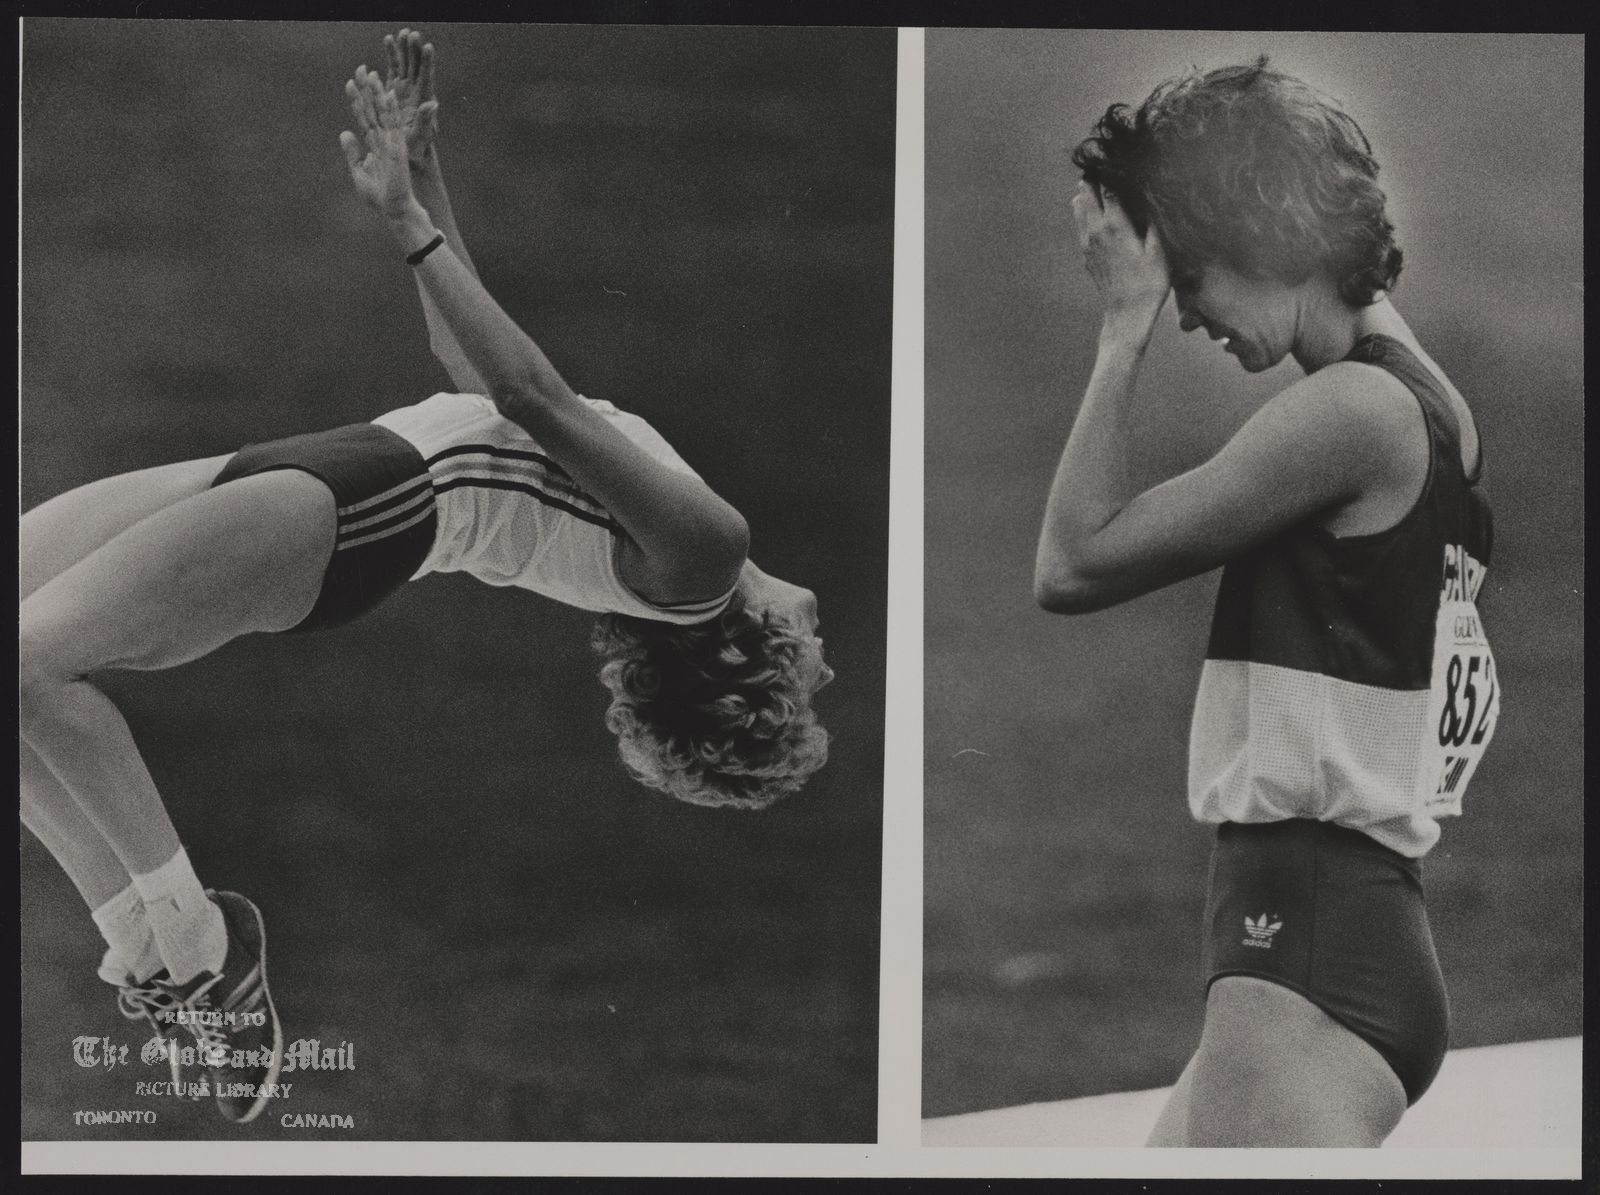 COMMONWEALTH GAMES EDINBURGH 1986 EDI11:SPEIAL FOR THE TORONTO GLOBE AND MAIL CANADA. EDINBURGH, SCOTLAND, AUGUST 1-COMBO-Ecstacy and the high jump event today. Right: Canadian Debbie Brill is dejected after being eliminated from the event. REUTER rt/Hans Deryk